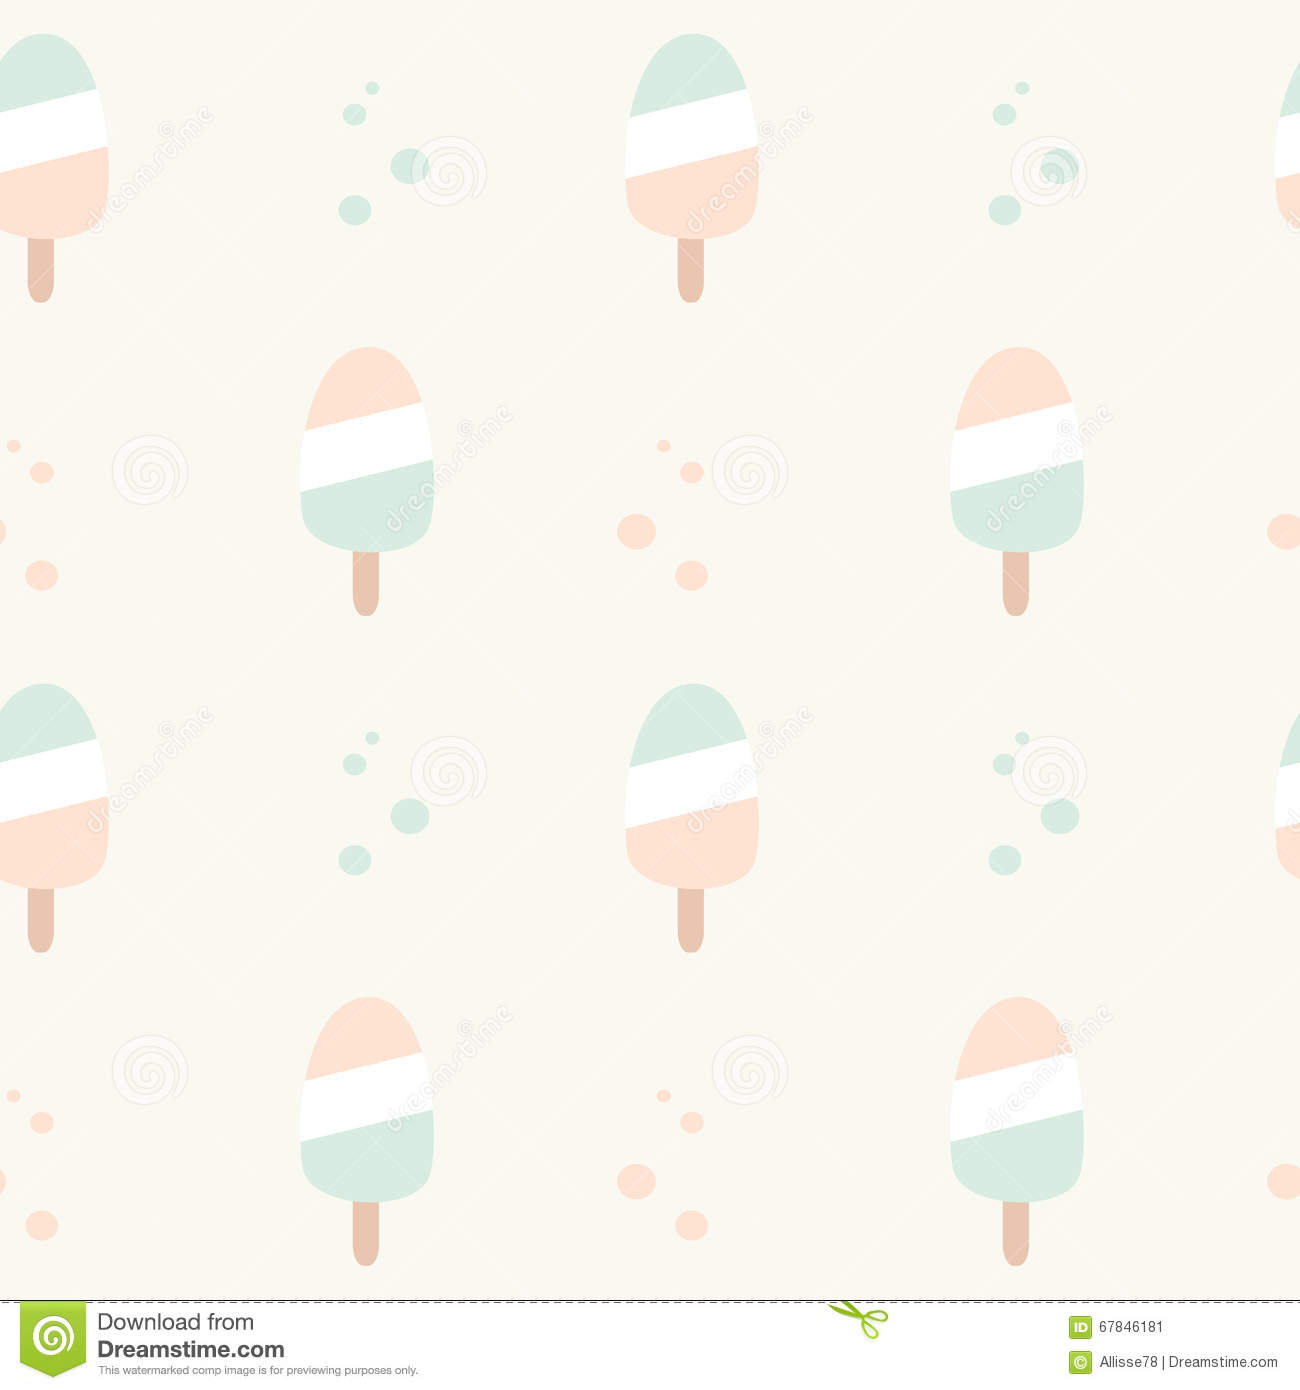 Pattern Cute Colorful Ice Cream Textiles Stock Vector: Cute Pastel Colors Ice Cream Seamless Pattern Background